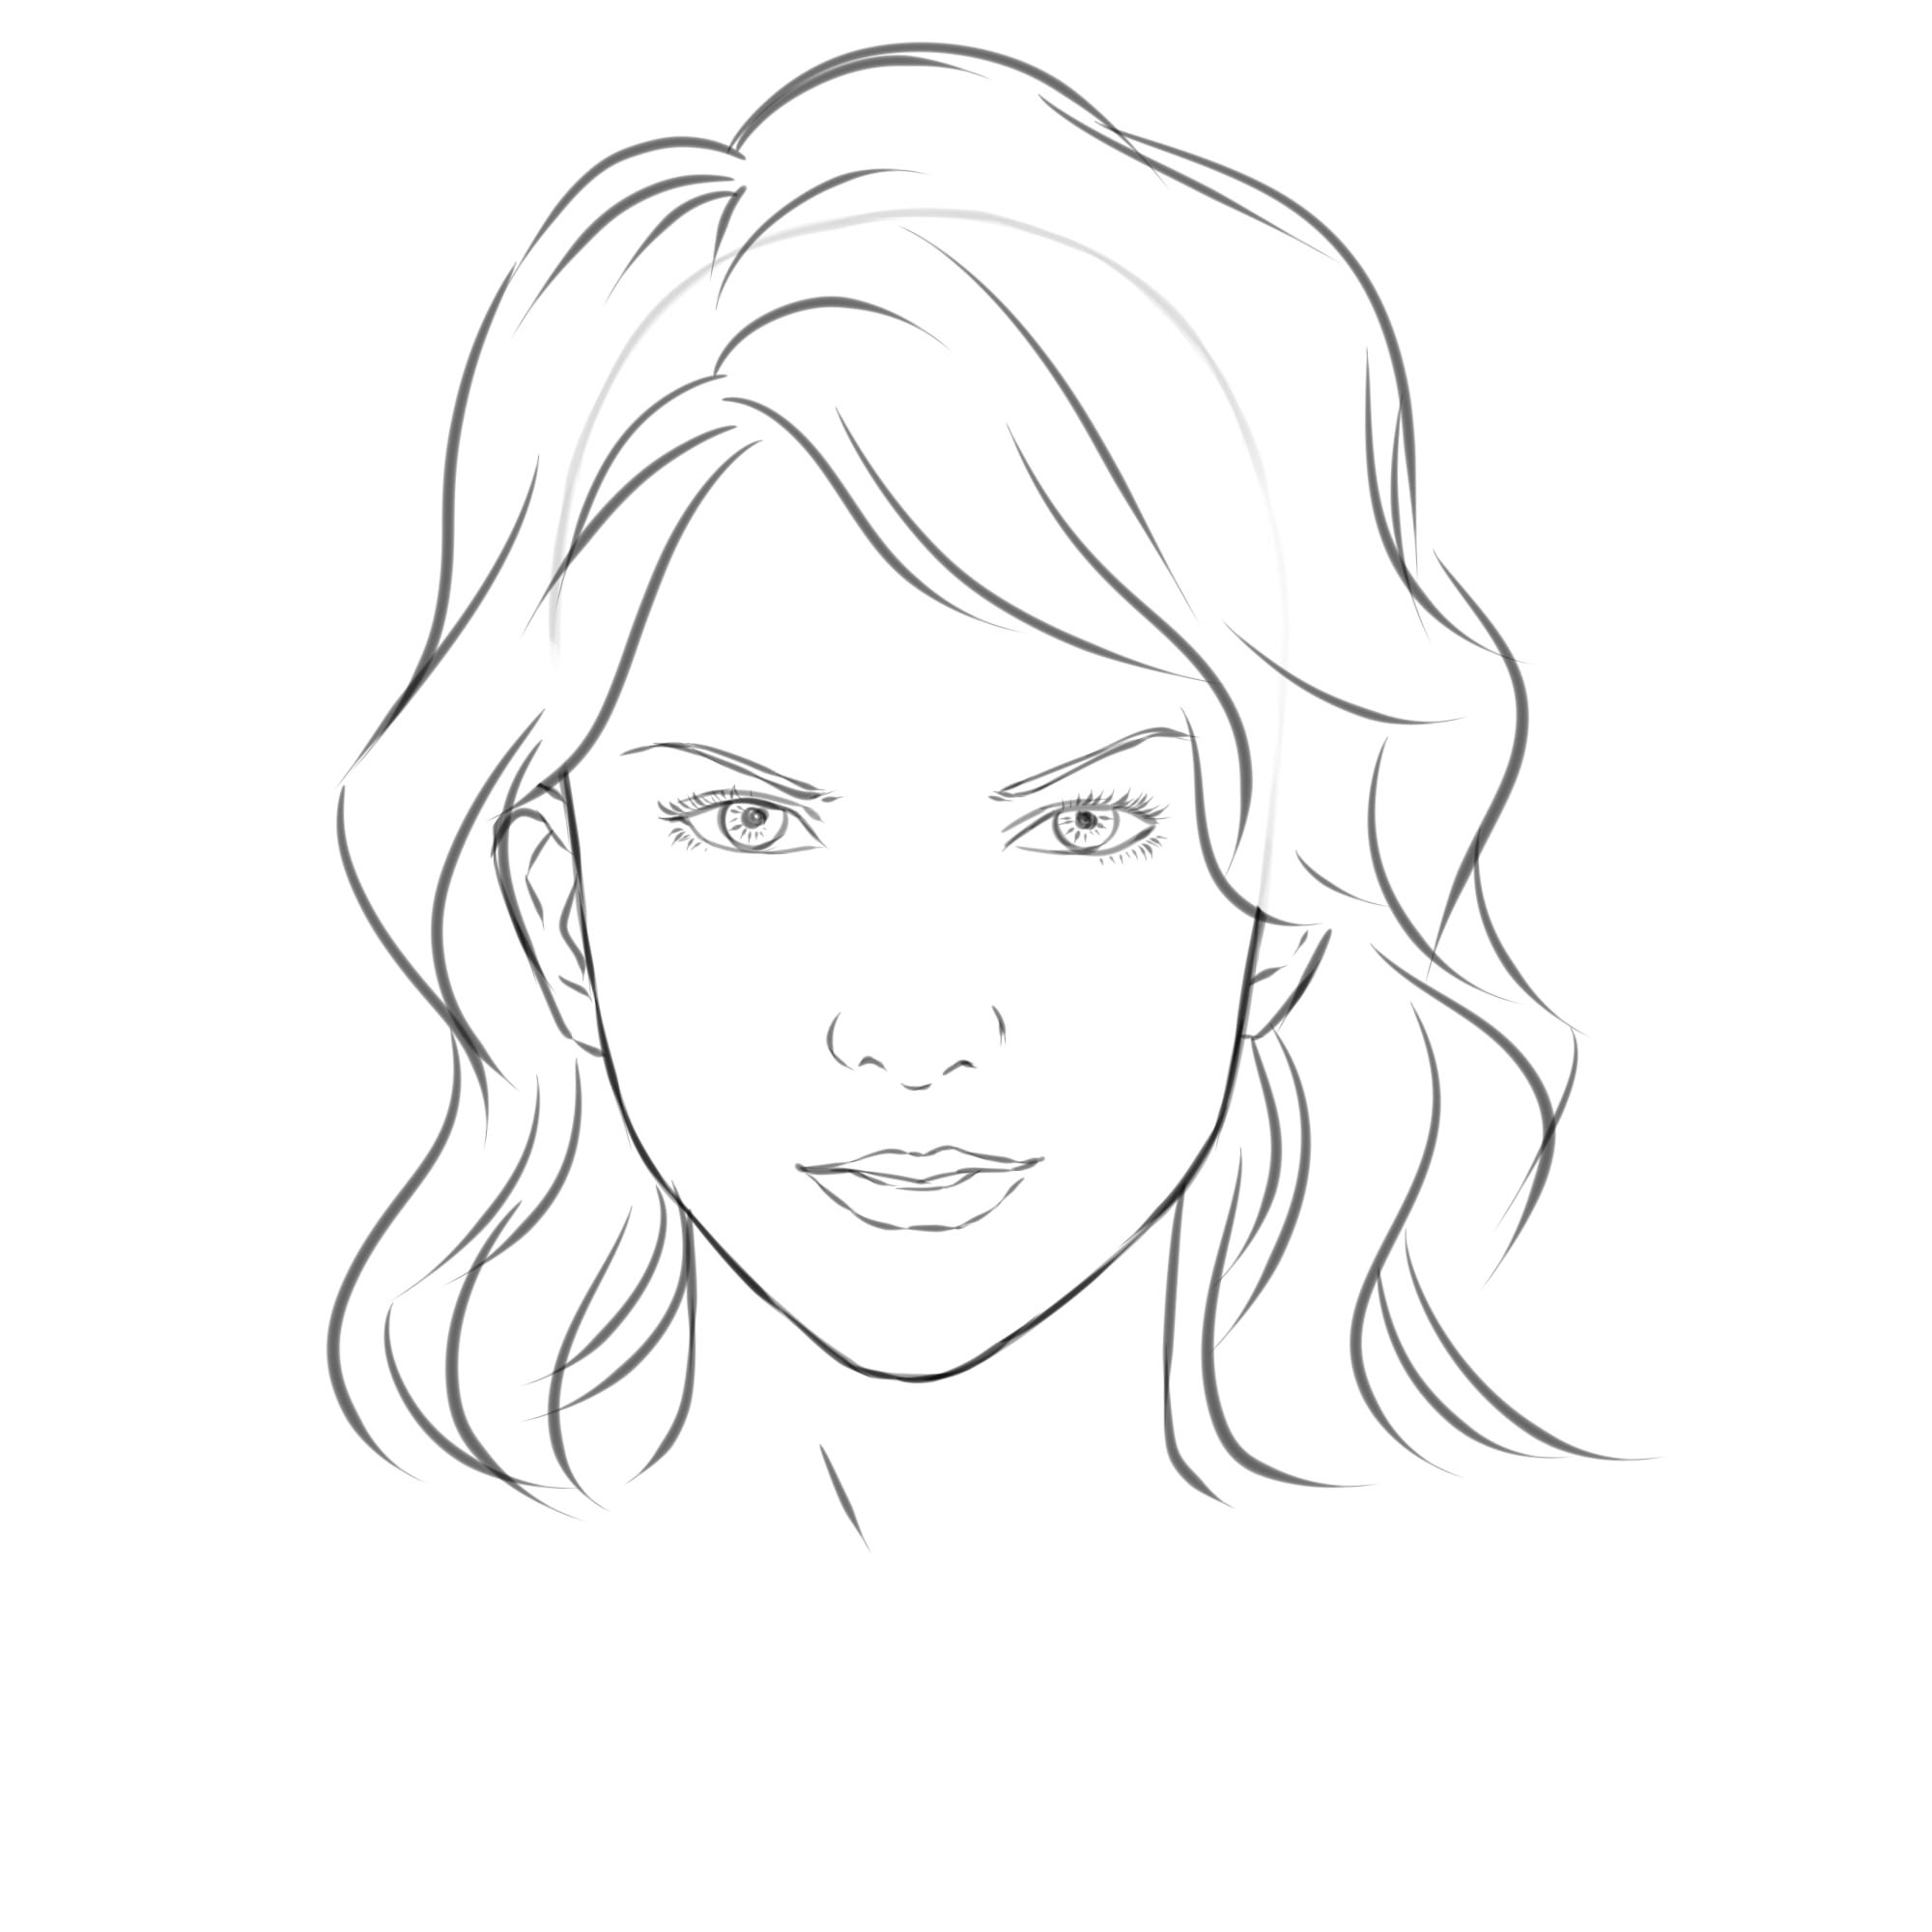 human face drawing at getdrawings com free for personal use human